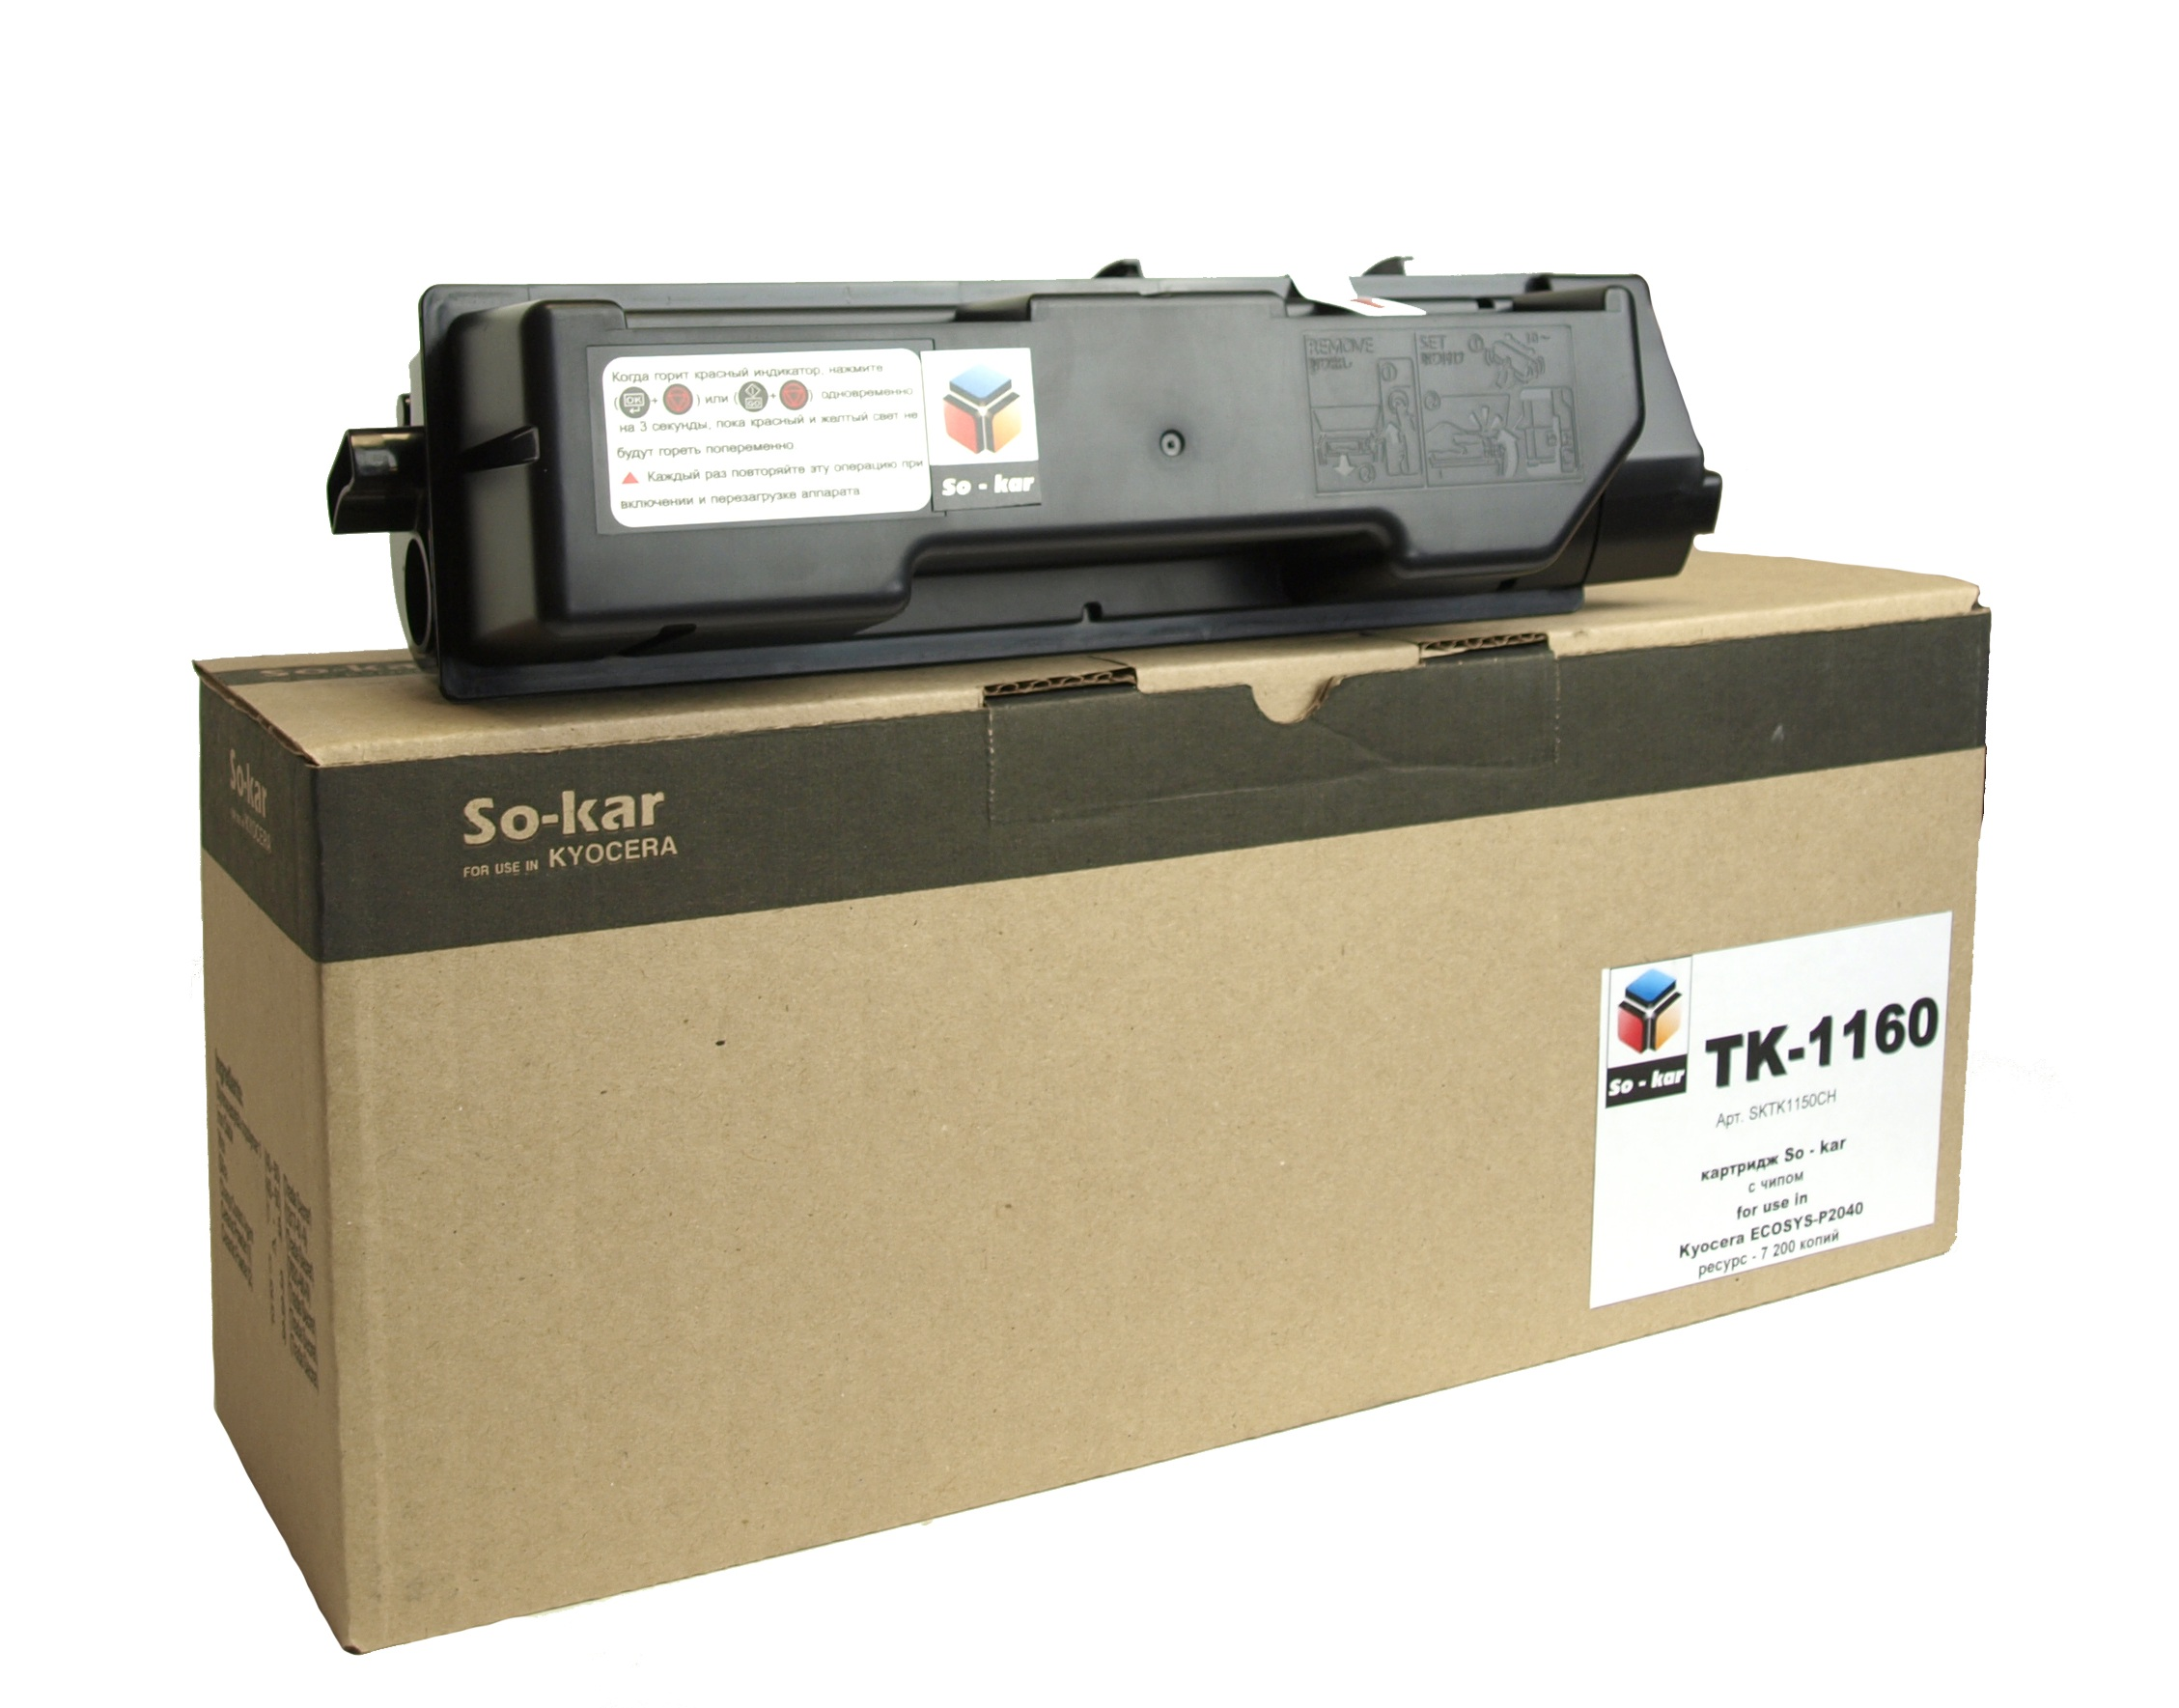 TK-1160 So-kar картридж для Kyocera с чипом  7200K